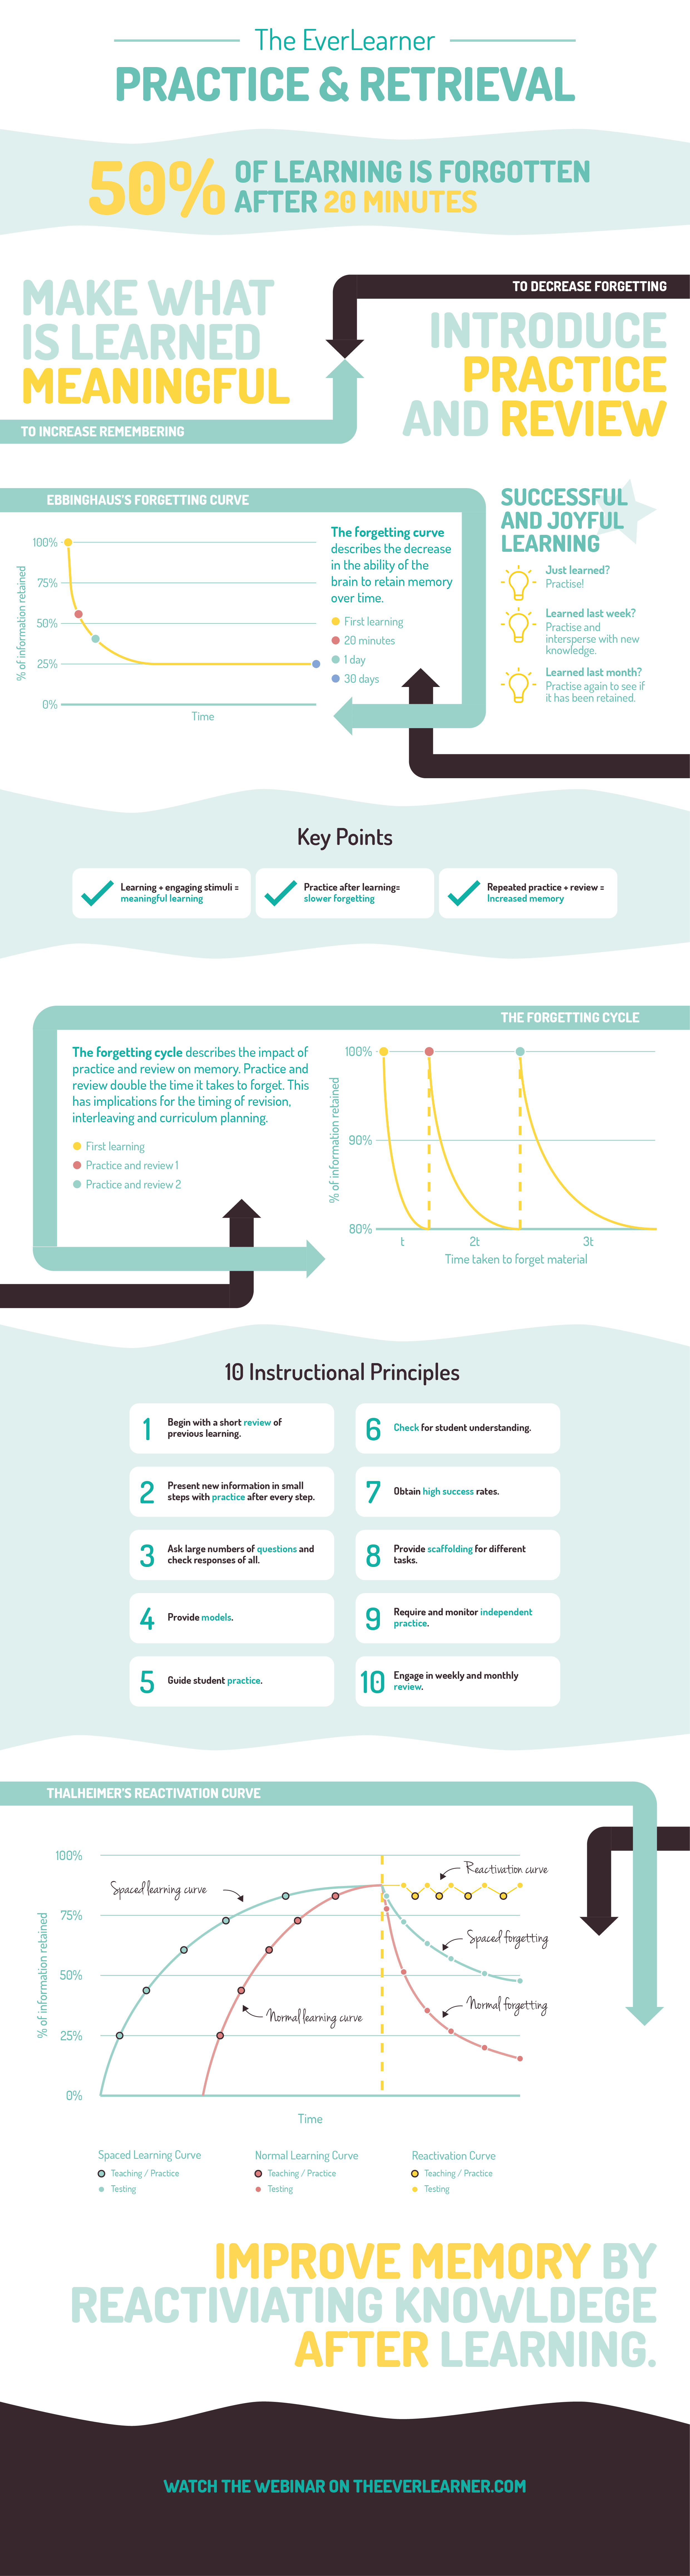 Practice and Retrieval Infographic